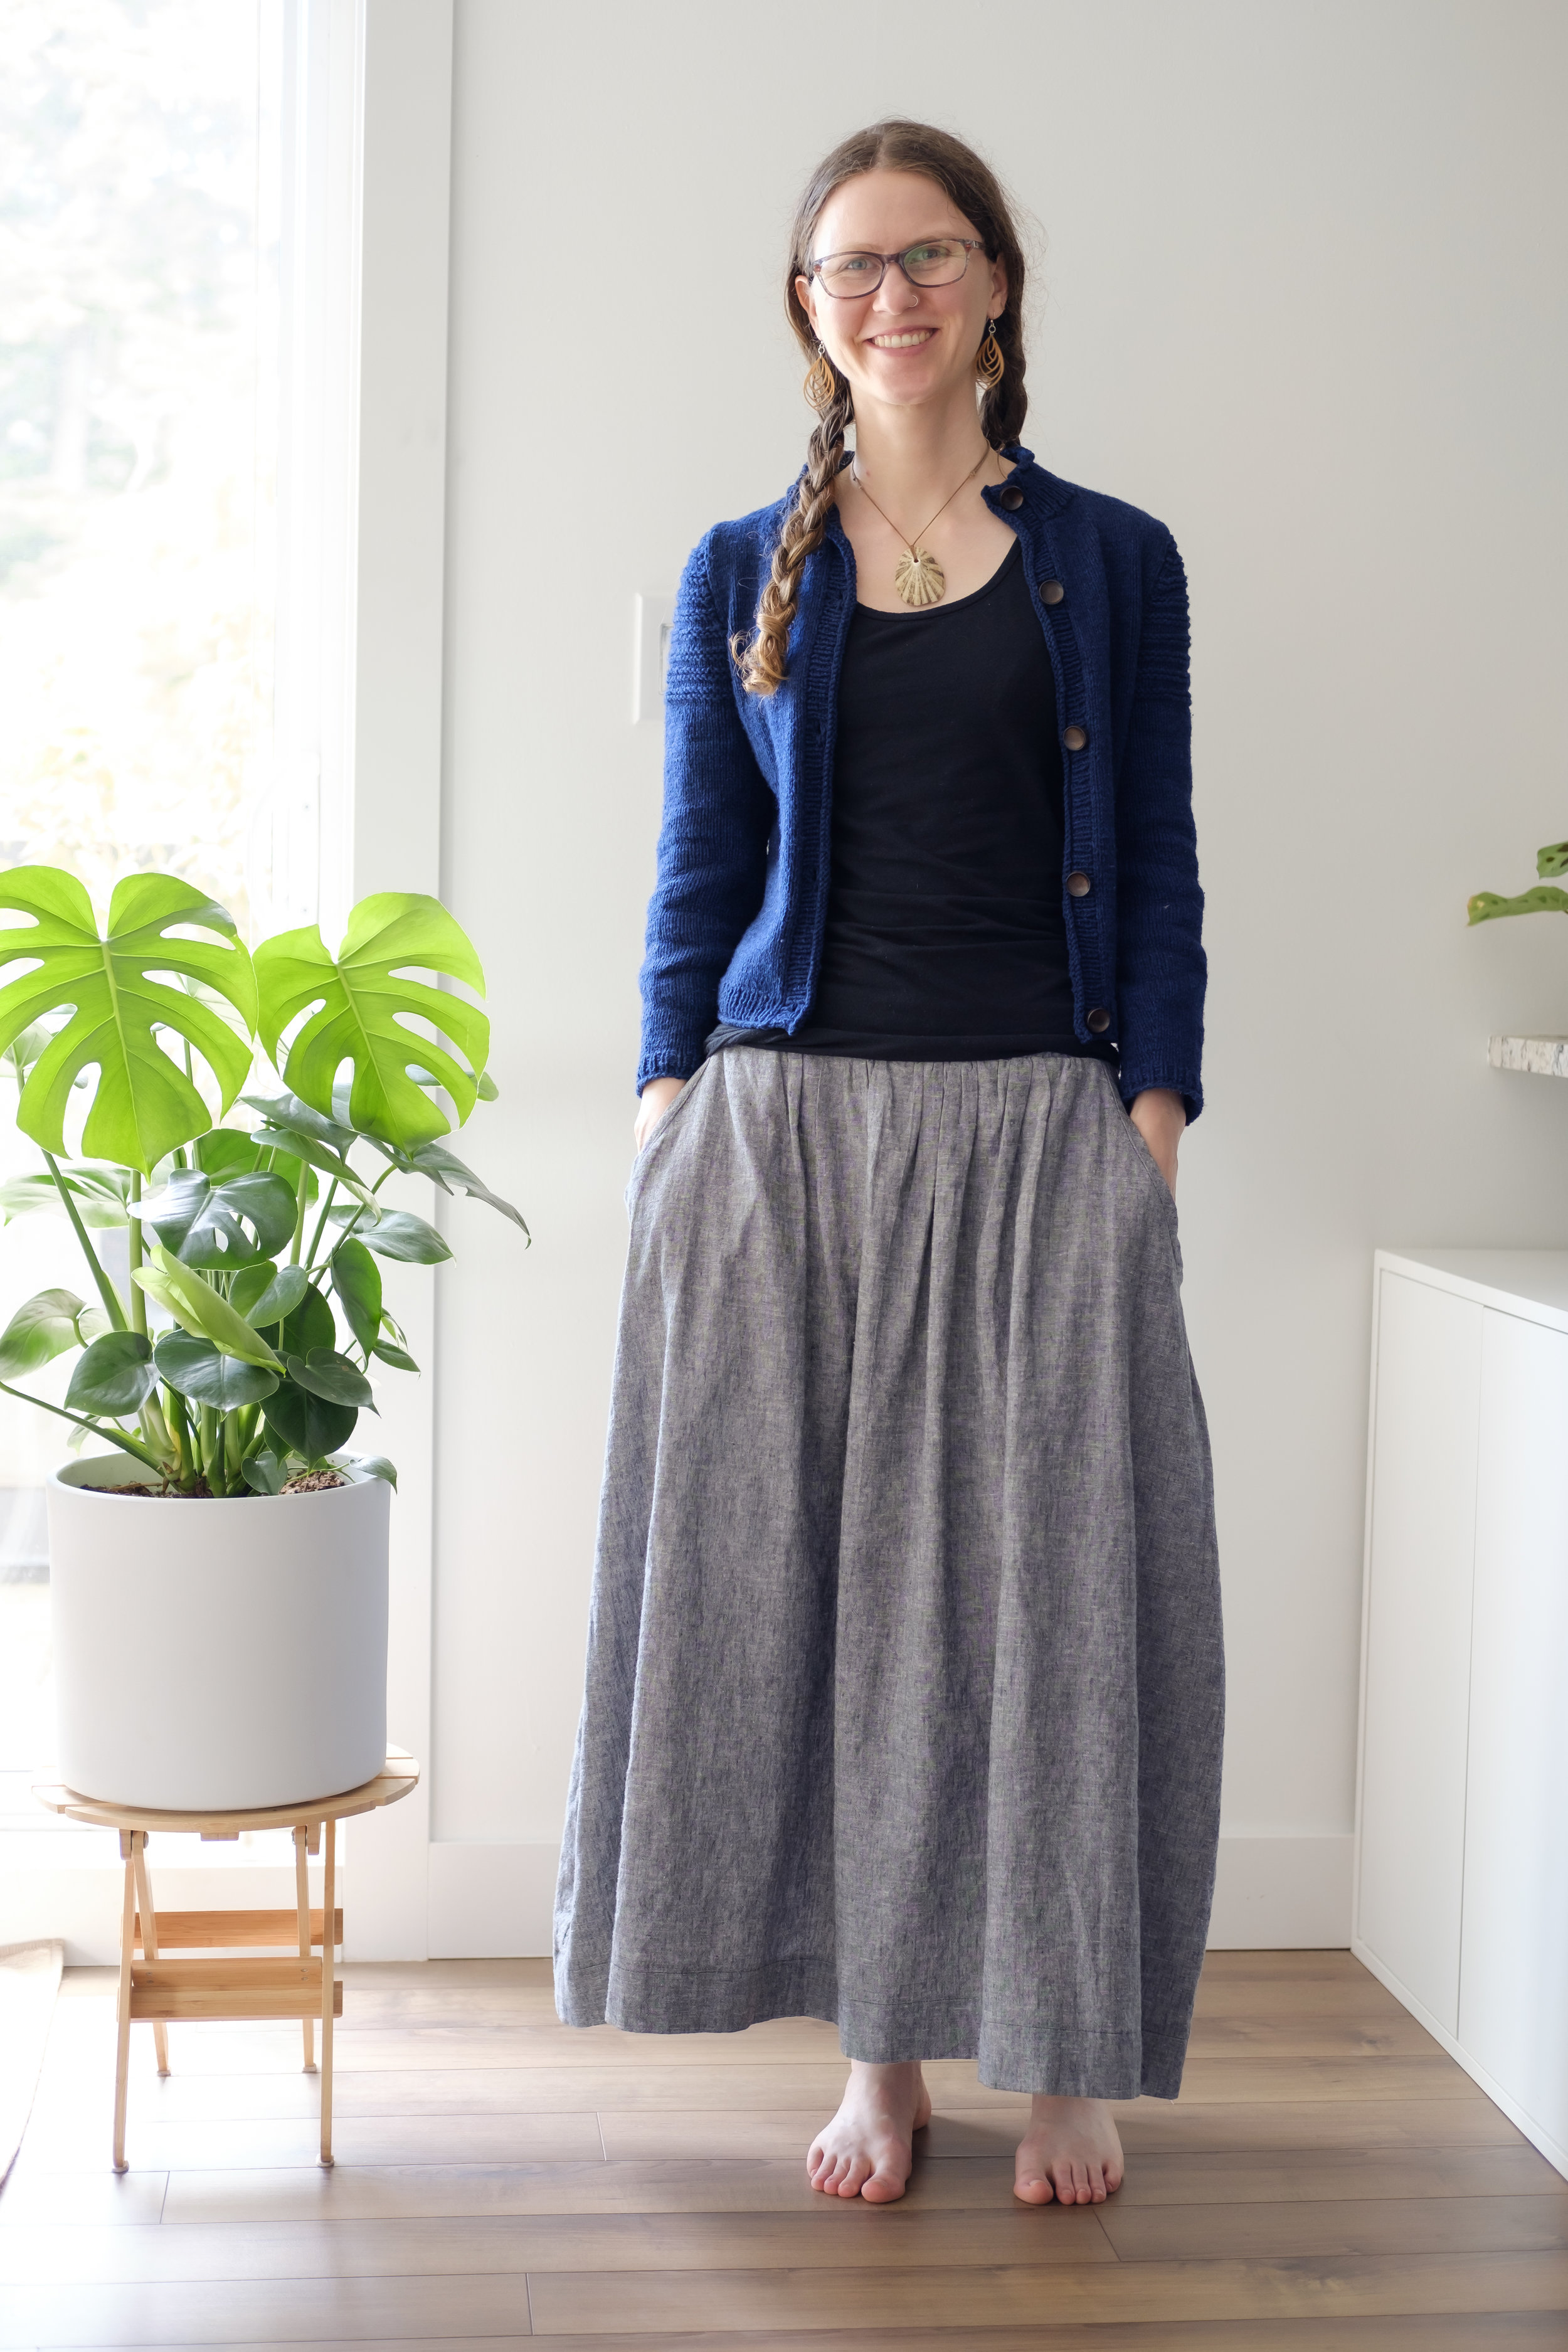 What I want to wear every day right now - a maxi skirt, fitted tank, and cropped cardigan. Pockets and braids of course!